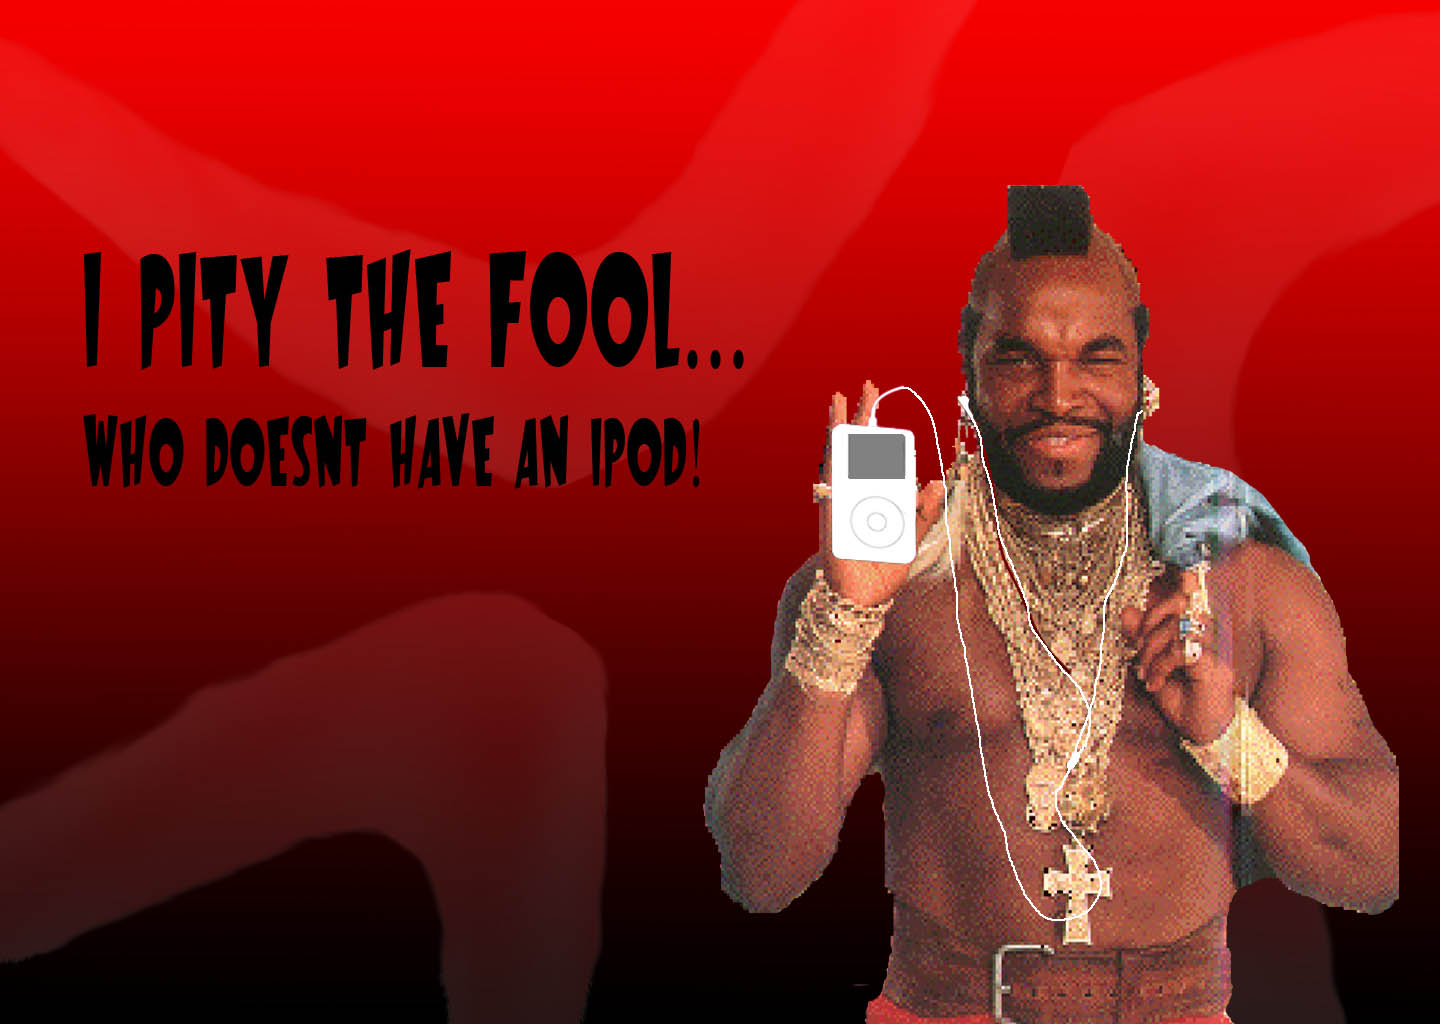 1440x1024 - Mr. T Wallpapers 5